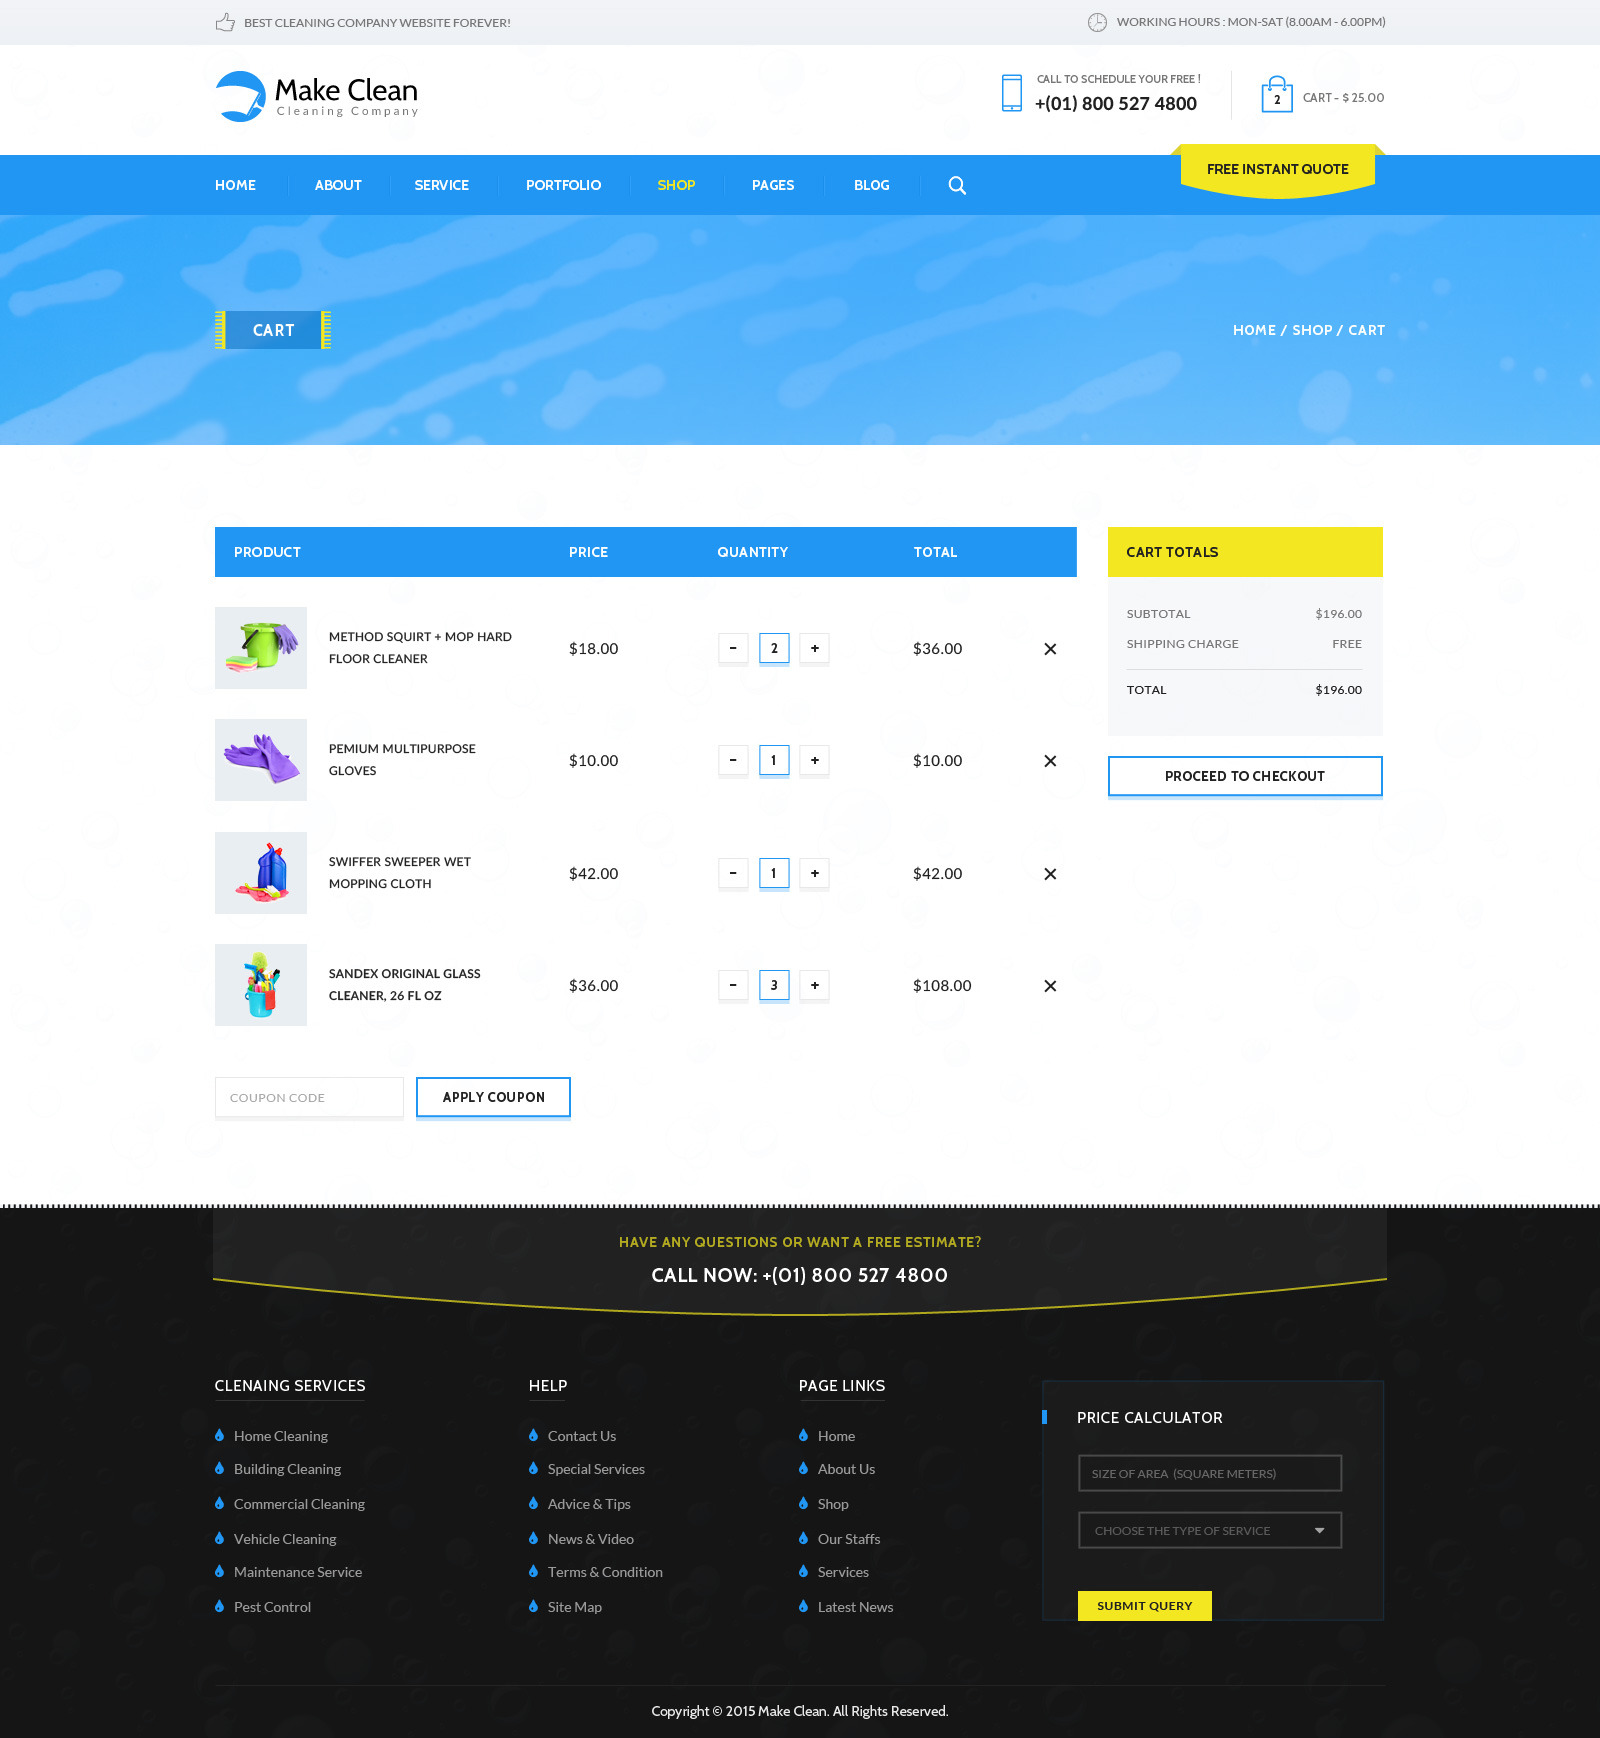 Clean html template 50 powerful minimalist website templates web make clean cleaning company html template by wpmines themeforest accmission Images